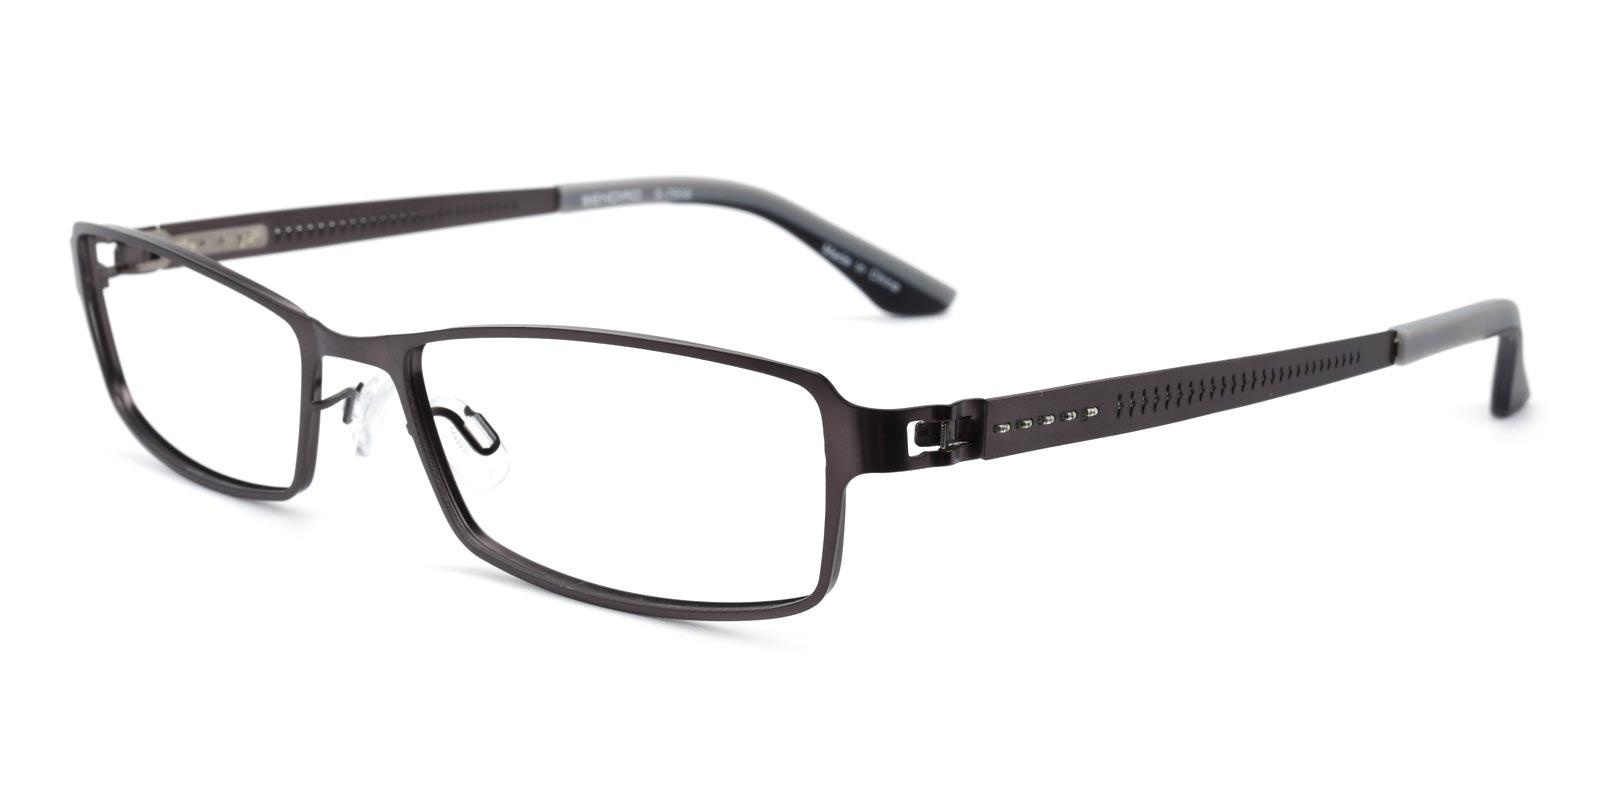 Benson-Gun-Rectangle-Metal-Eyeglasses-additional1